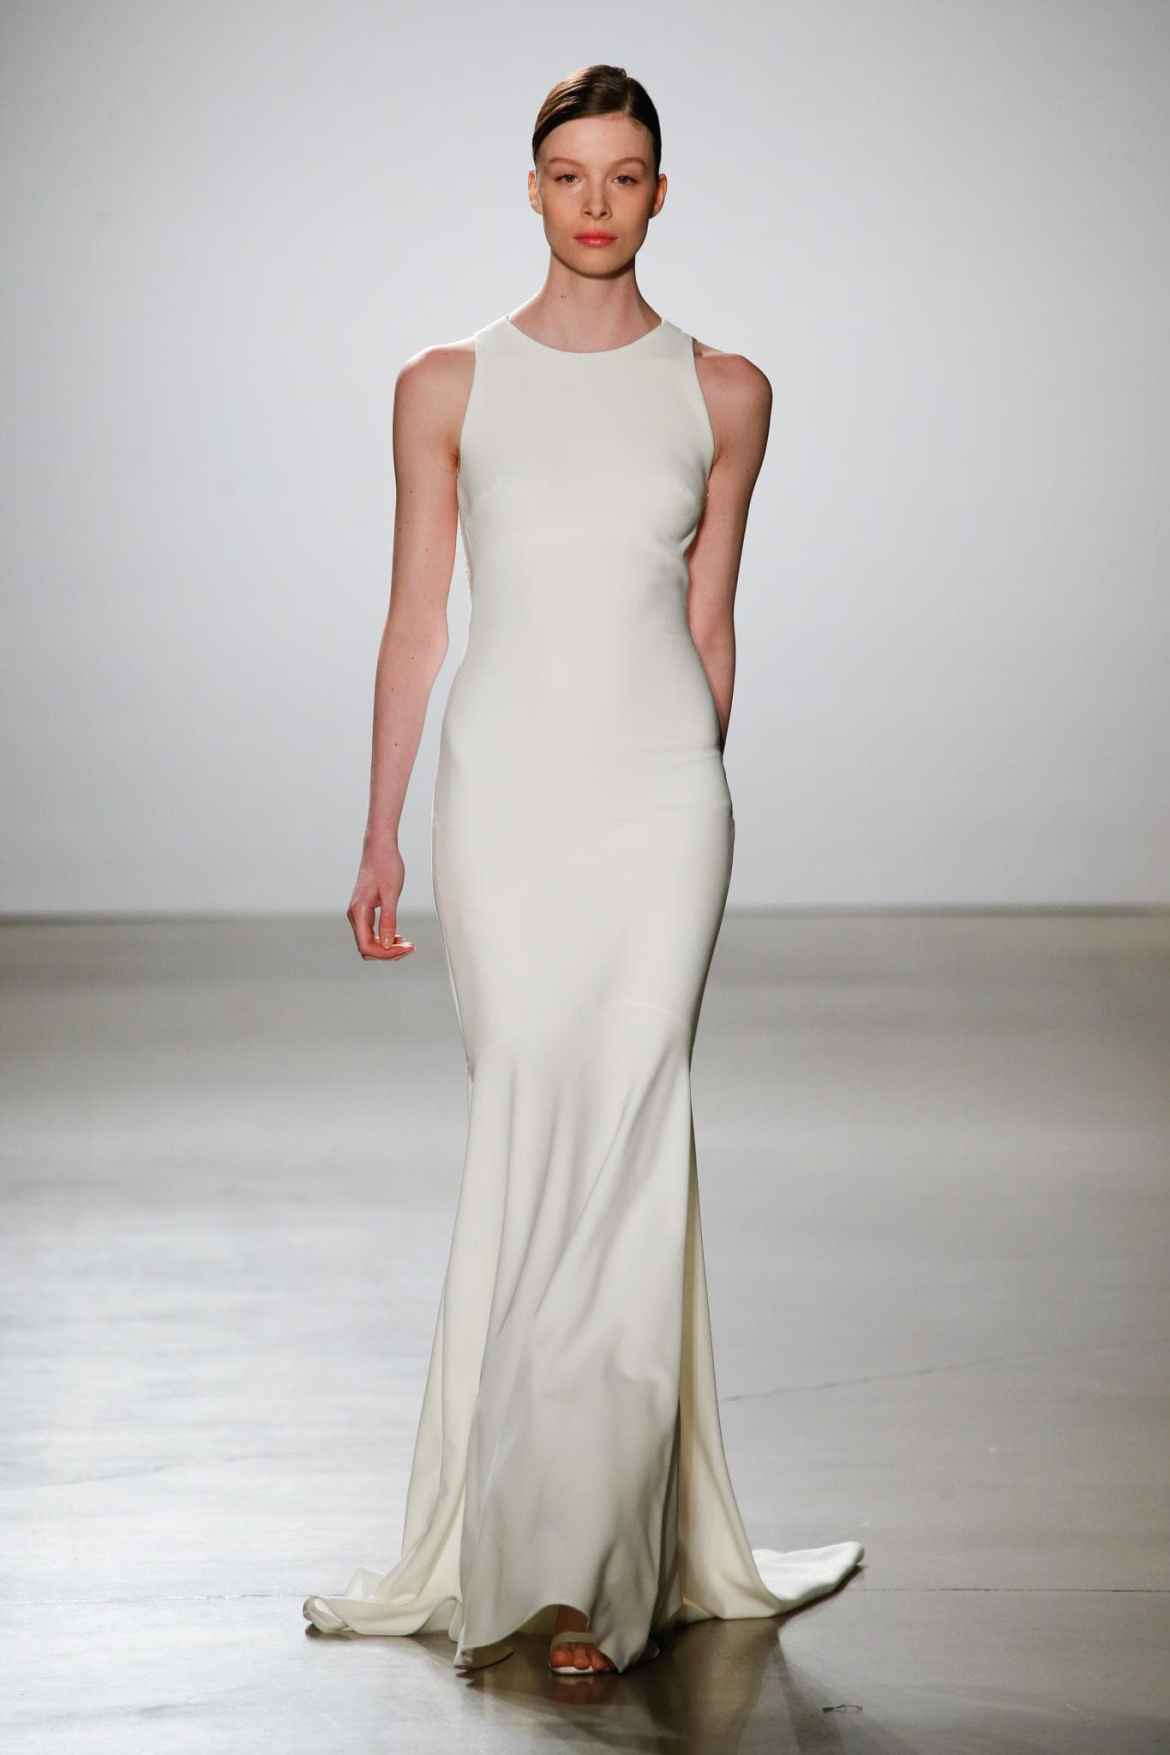 We adulation the adverse of a sleek, architectural clothes with a beachy setting.